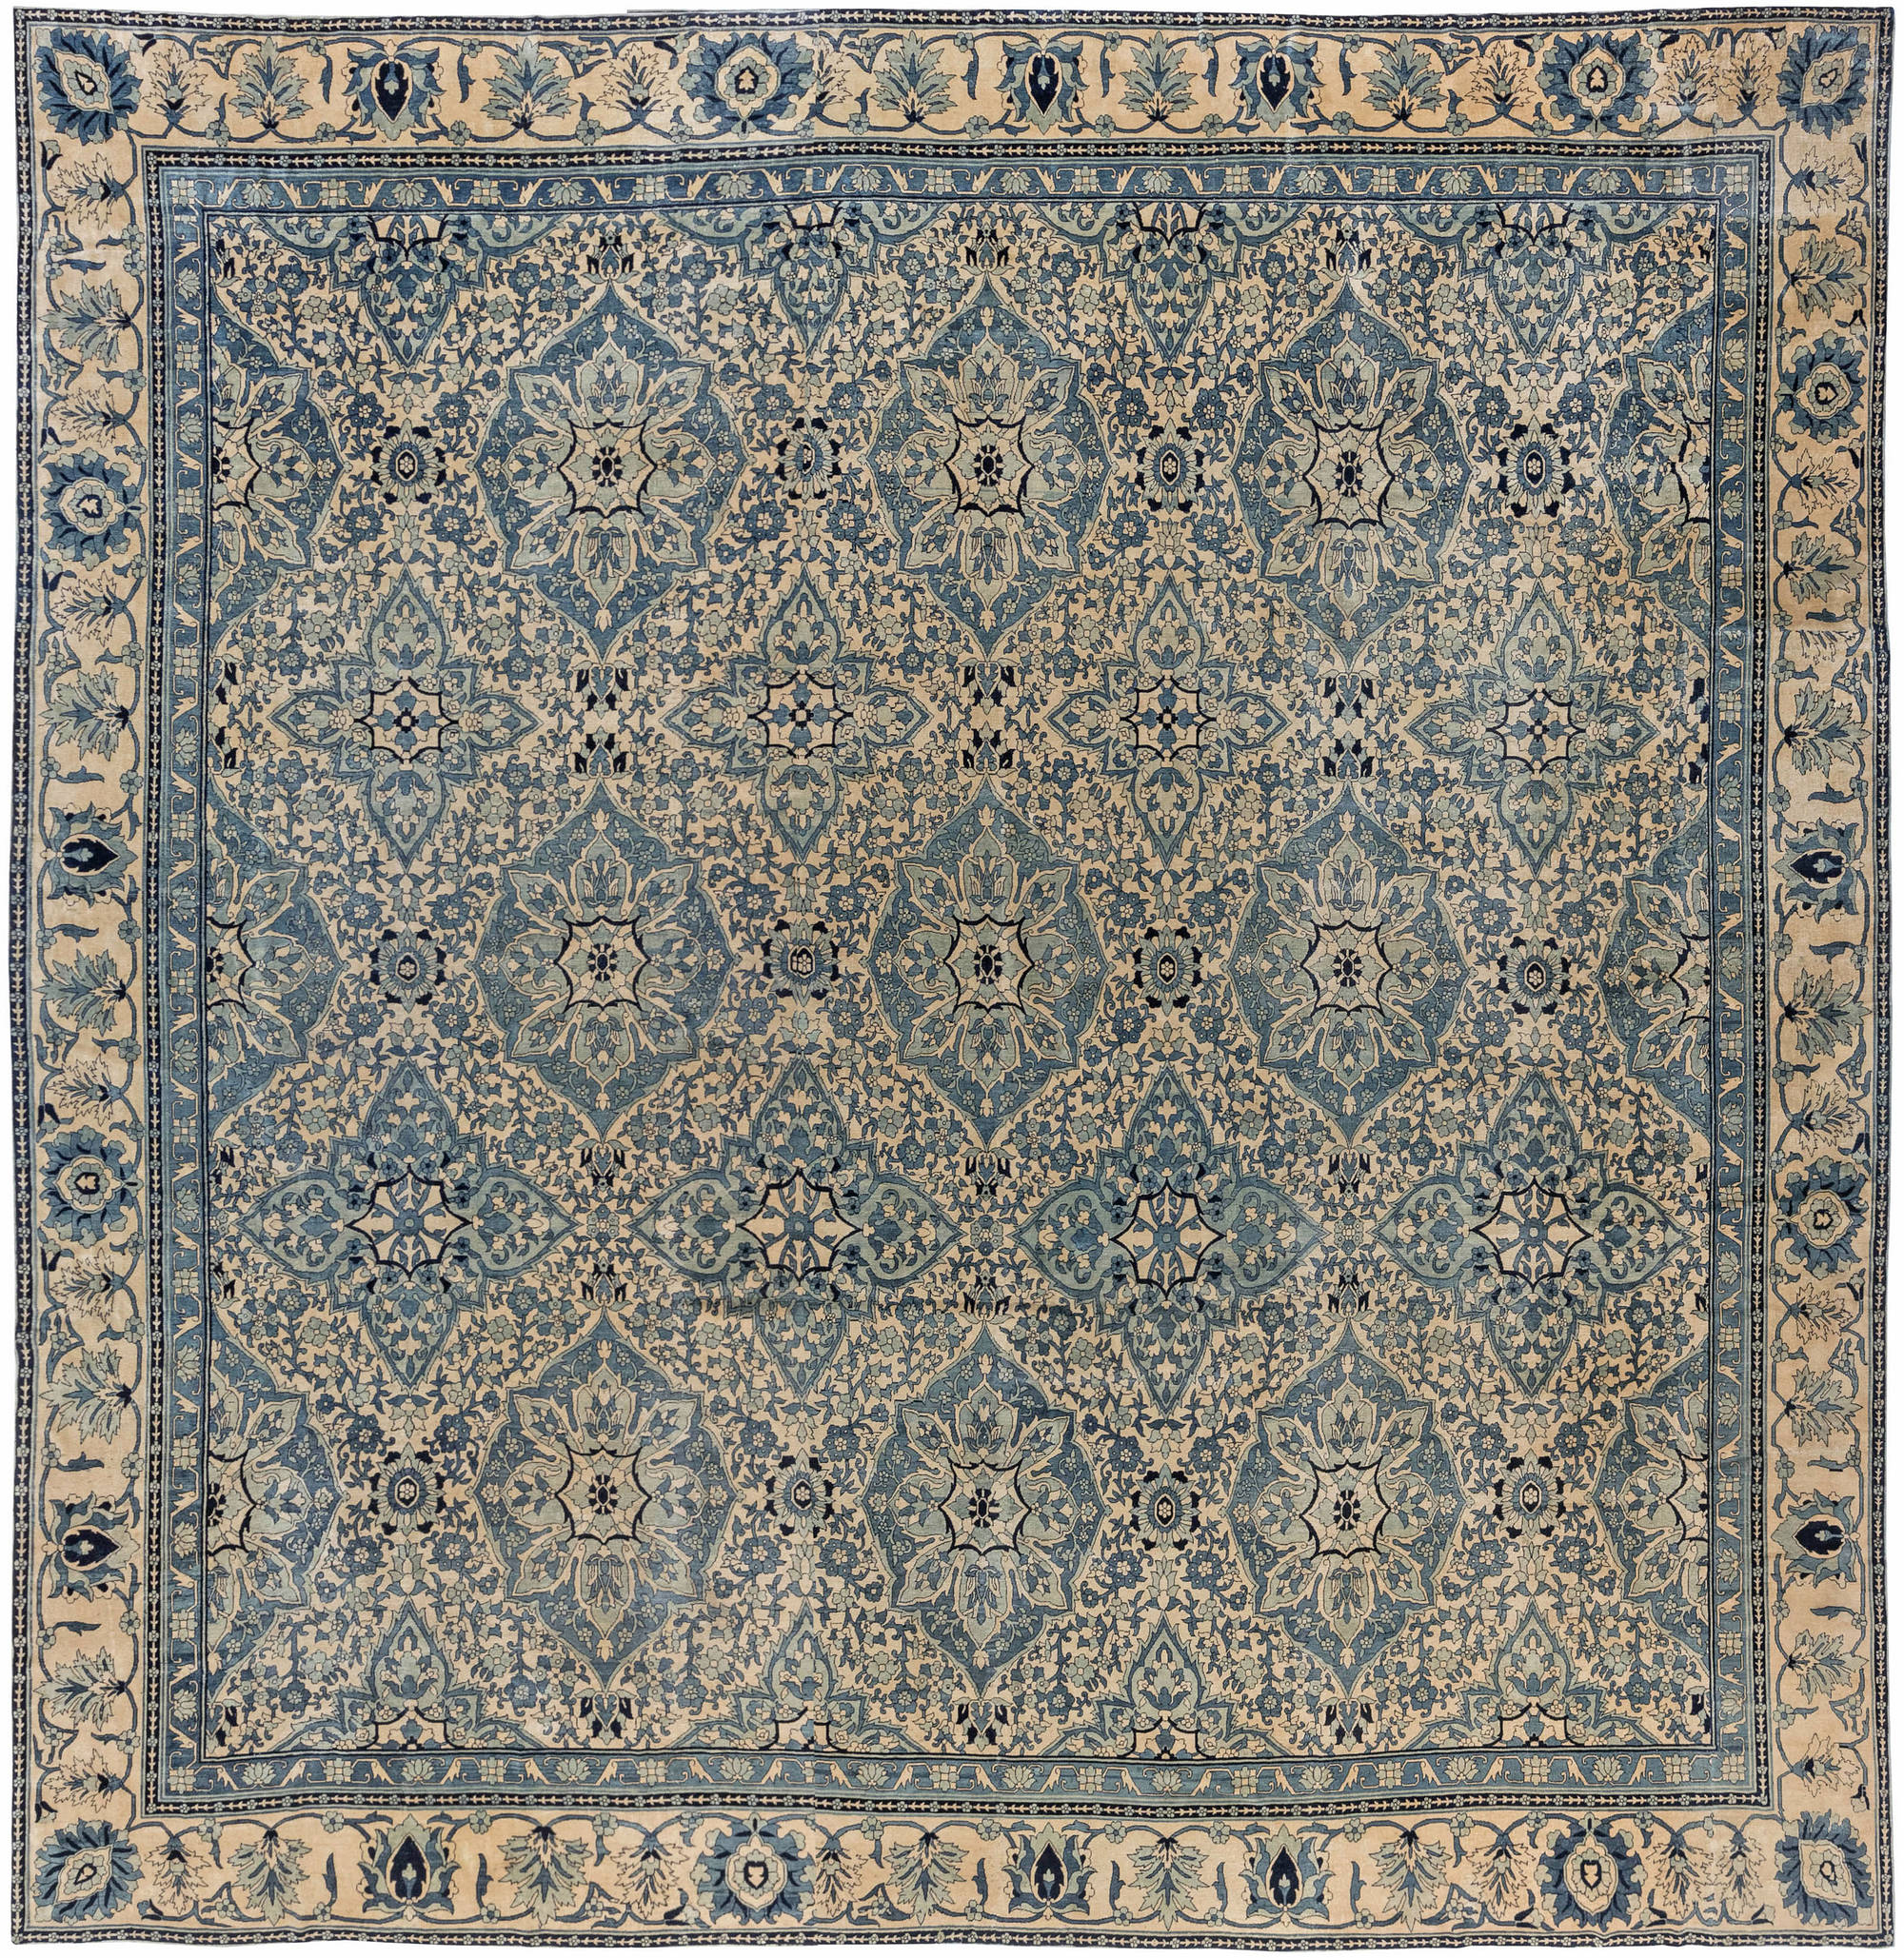 Antique Indian Rugs: Oversized Antique Indian Rug BB5360 By Doris Leslie Blau